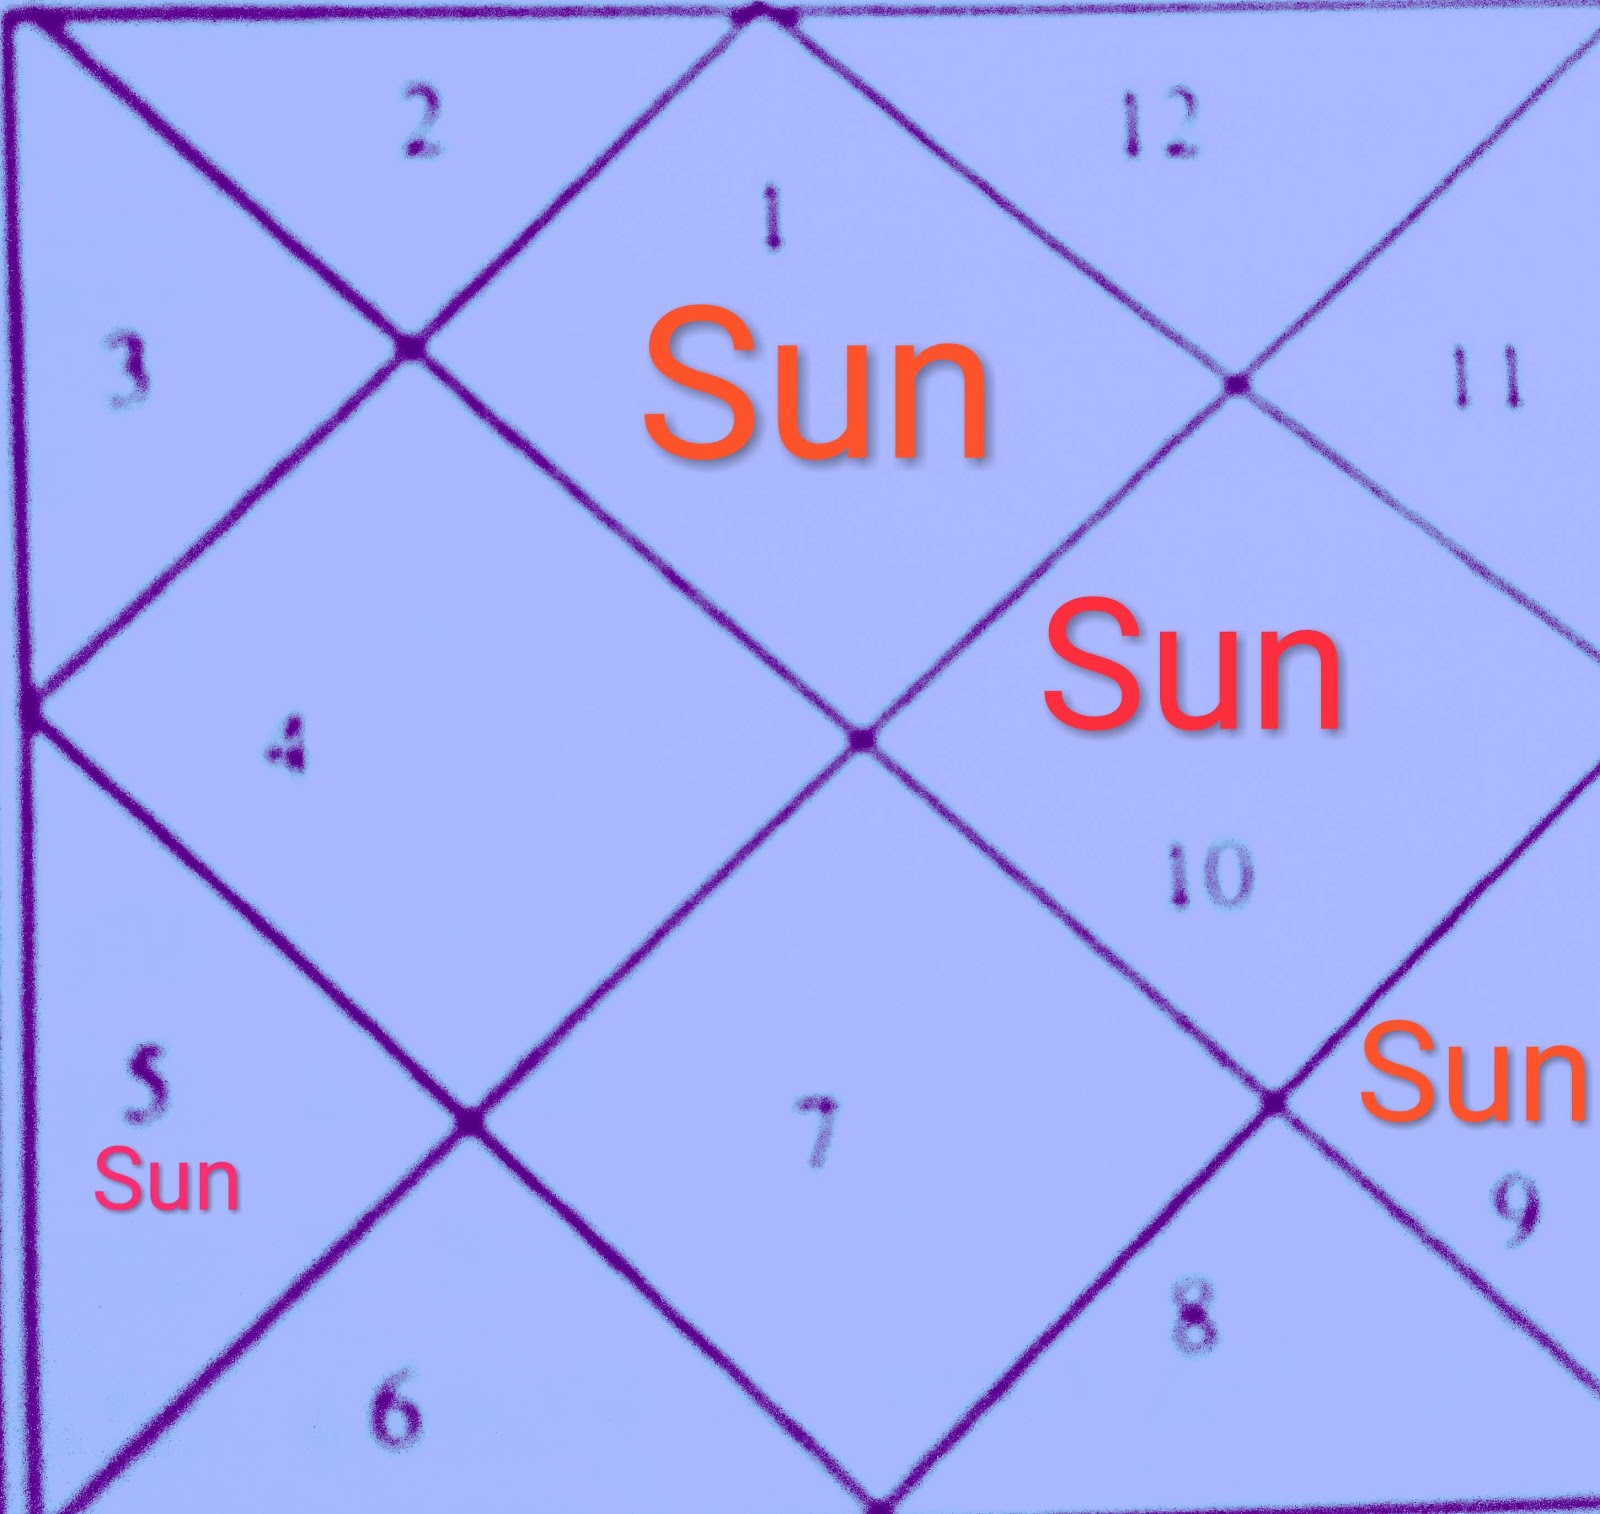 TRANSIT OF PLANETS: ON JULY 17, 2019 SUN WILL TRANSIT IN